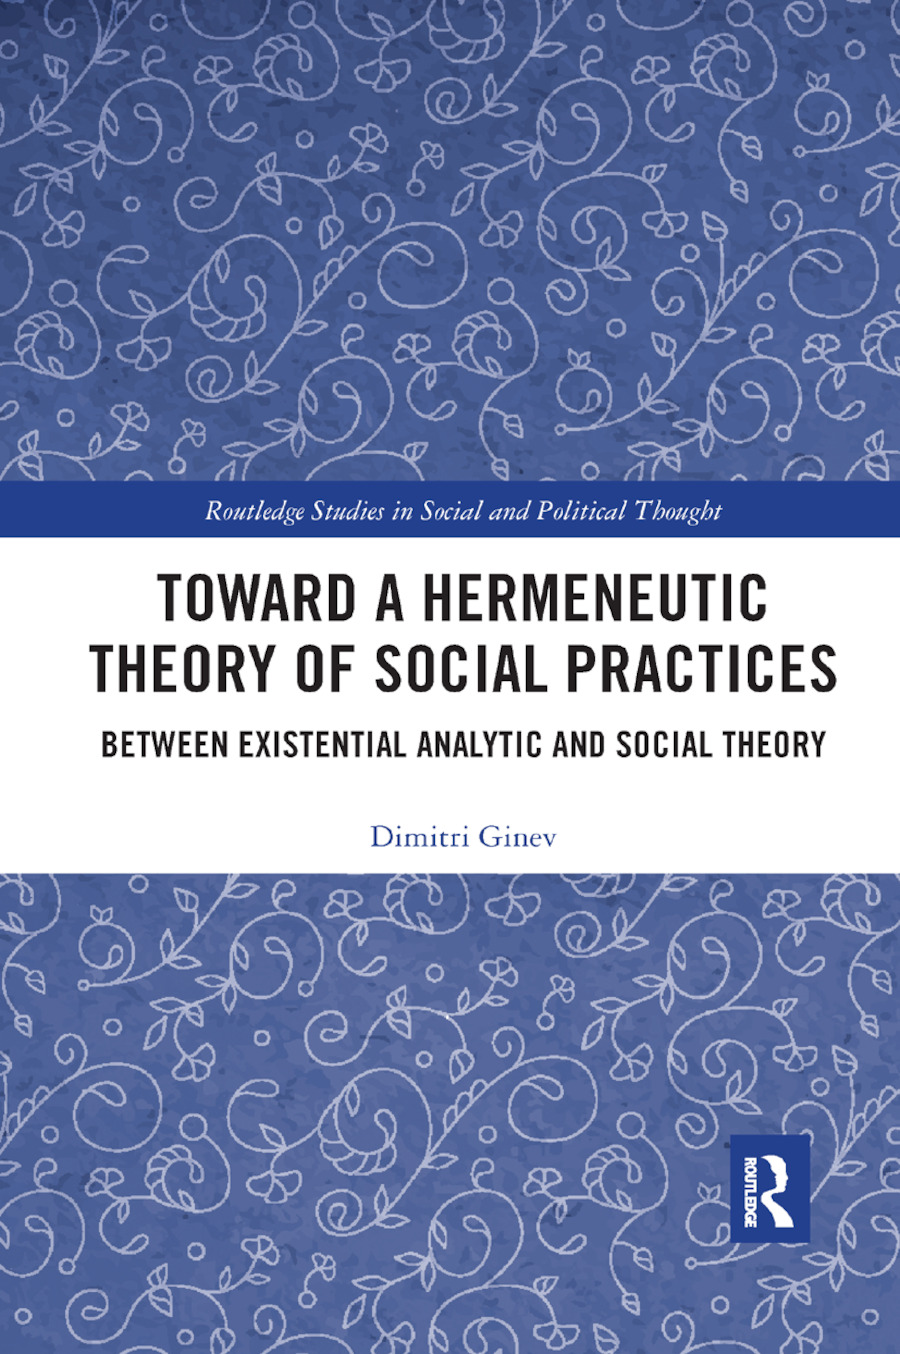 Toward a Hermeneutic Theory of Social Practices: Between Existential Analytic and Social Theory book cover